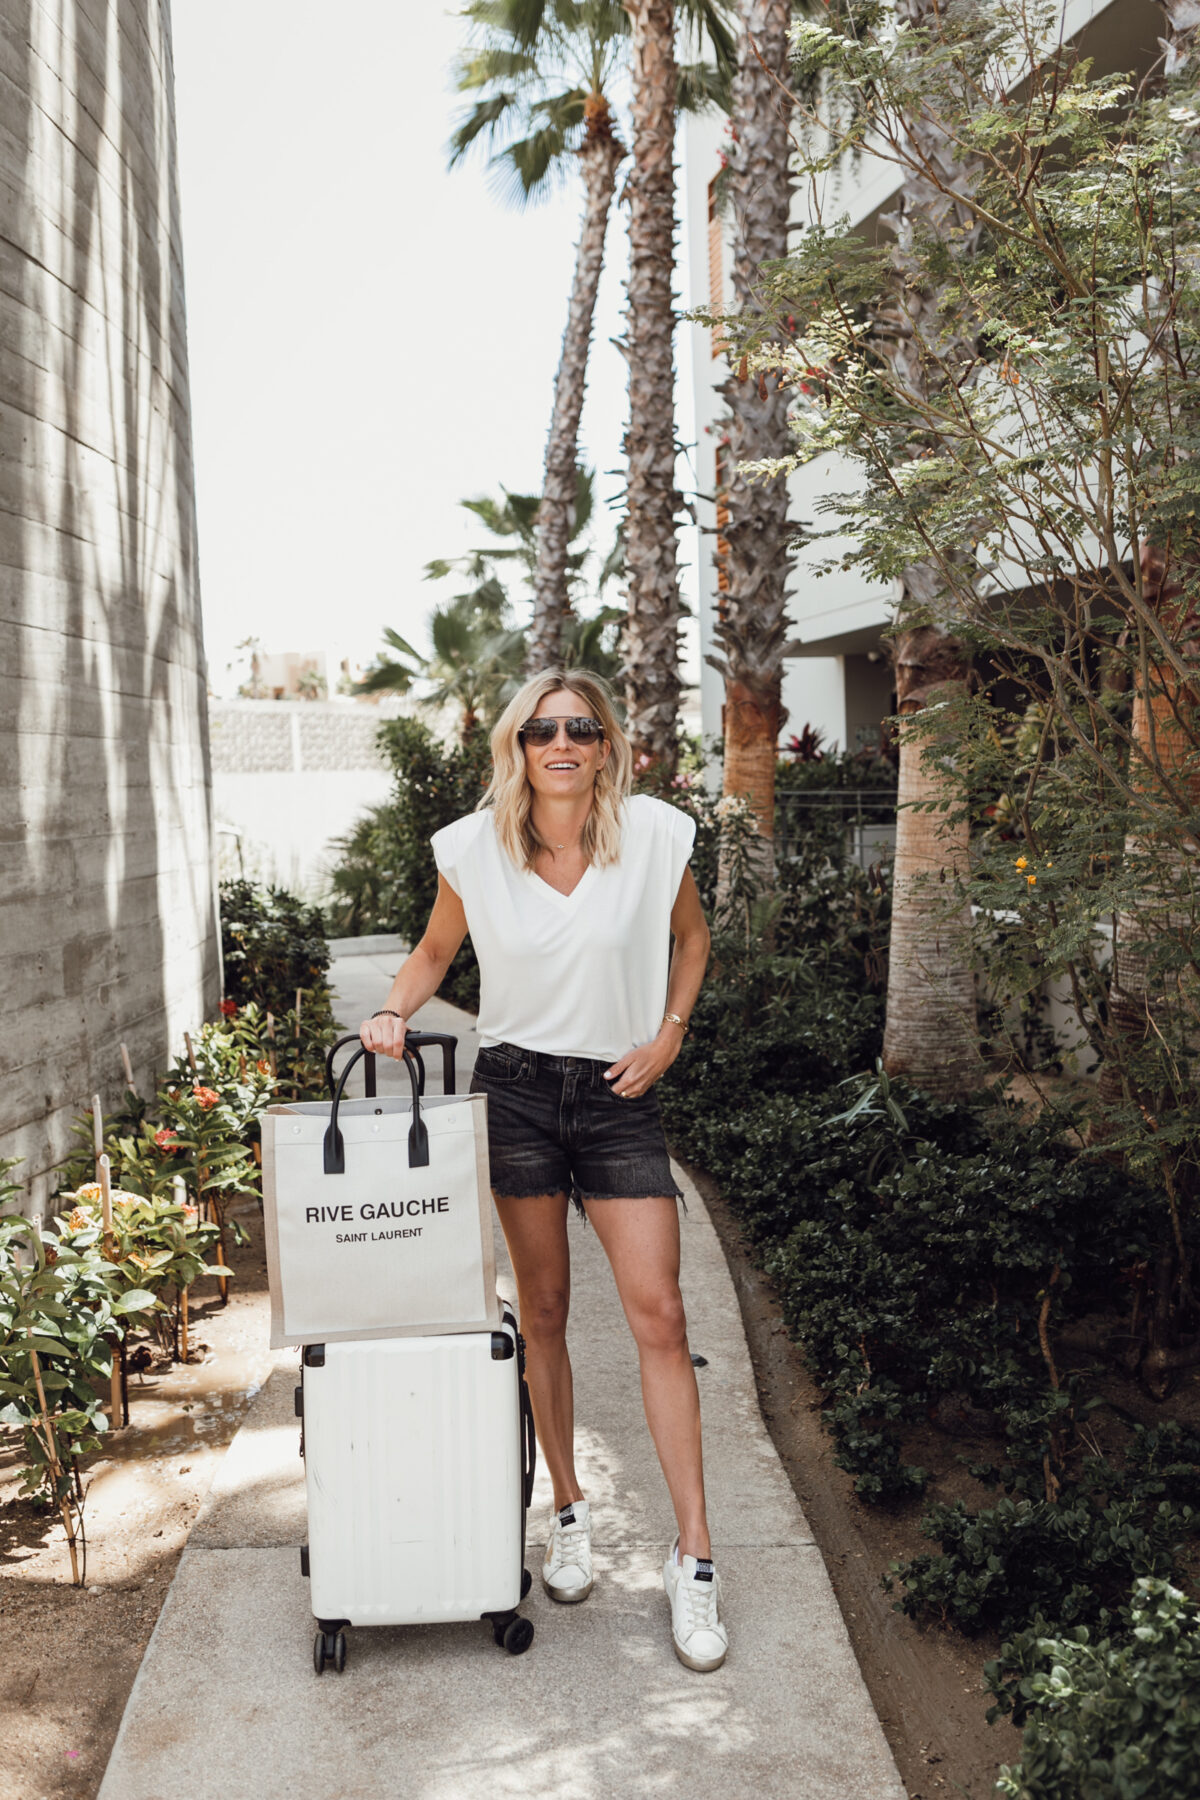 travel day guide woman wearing shorts and shirt